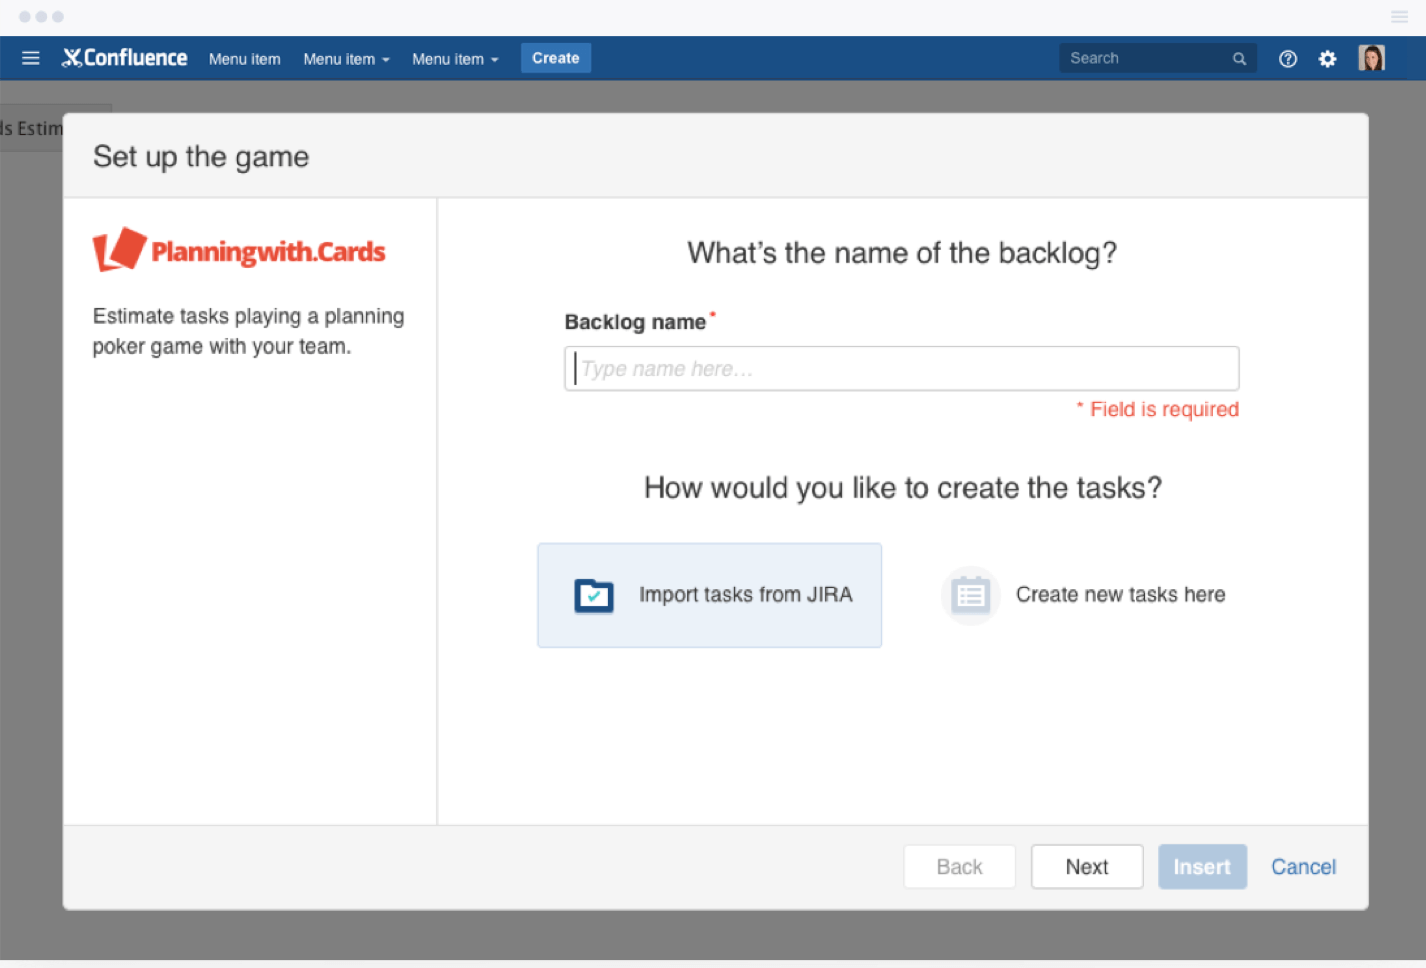 Create tasks or import backlogs from Jira or Confluence